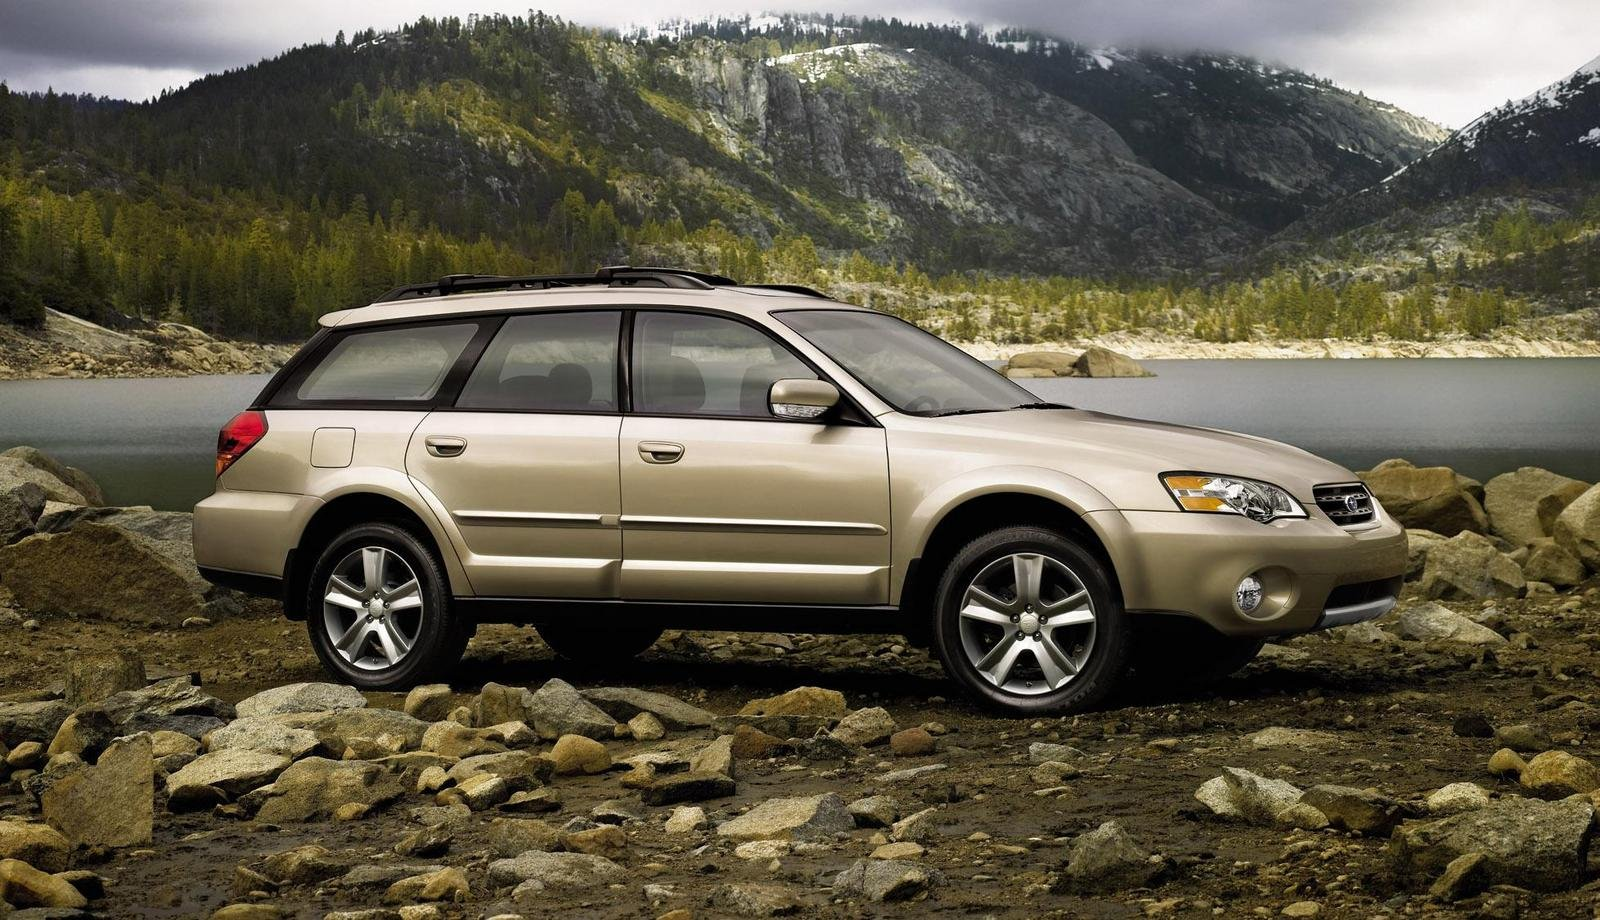 2007 Subaru Outback Picture 165356 Car Review Top Speed